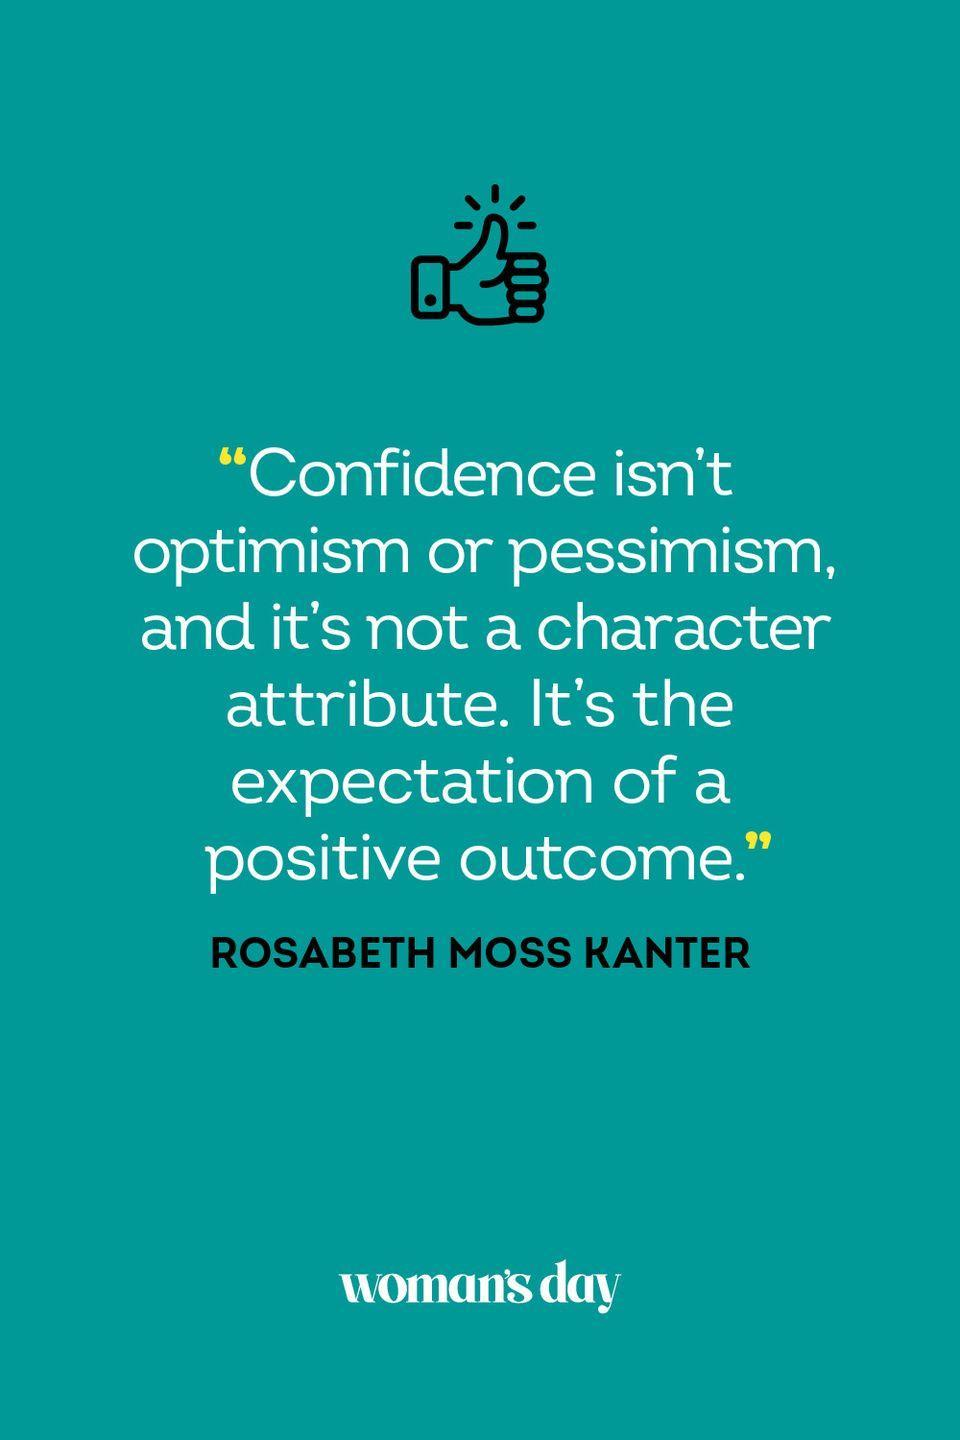 <p>Confidence isn't optimism or pessimism, and it's not a character attribute. It's the expectation of a positive outcome.</p>